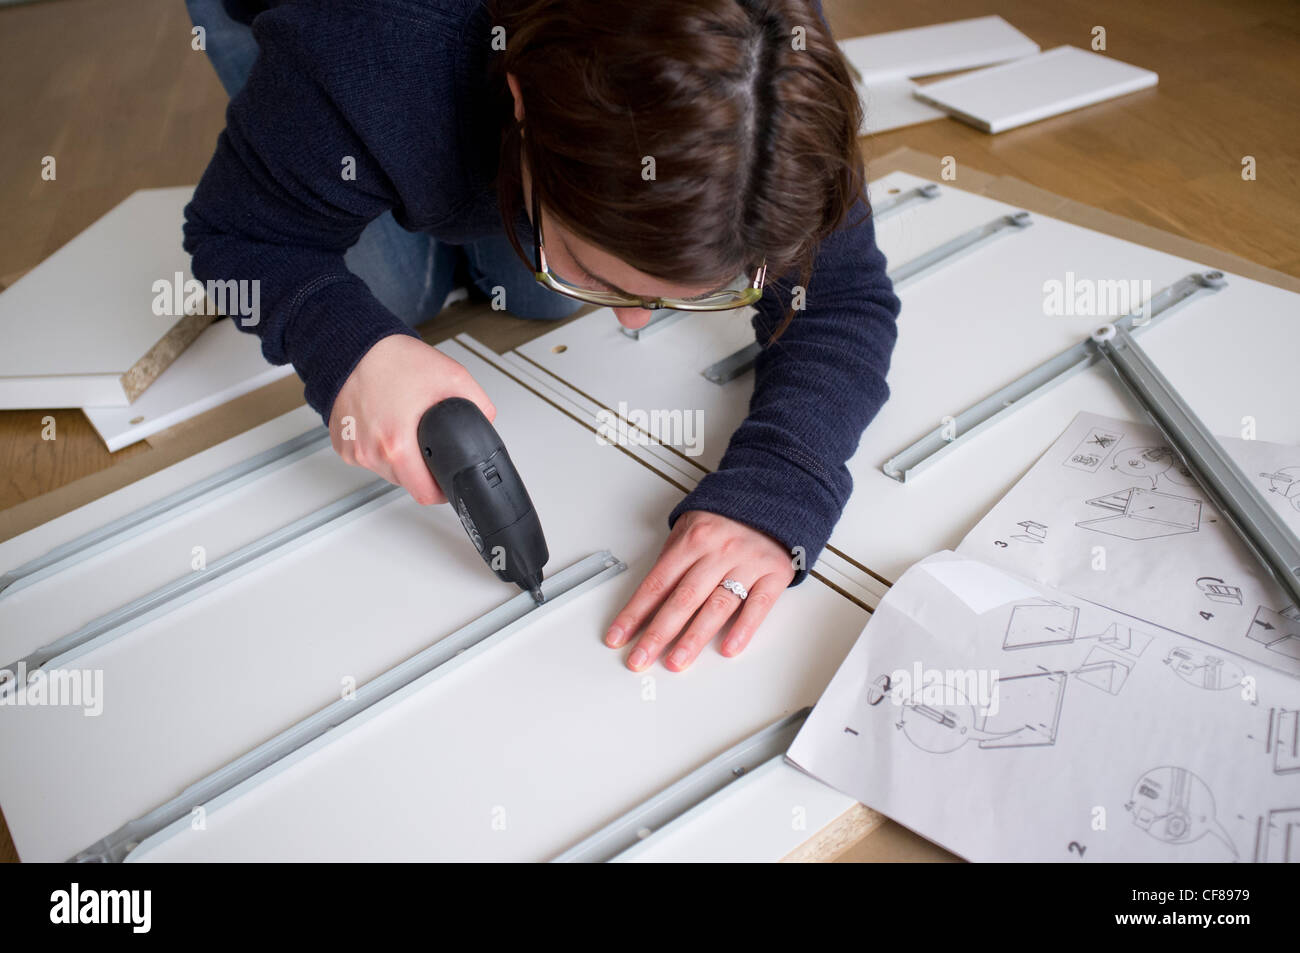 Woman assembling flat-pack furniture from IKEA at home - Stock Image